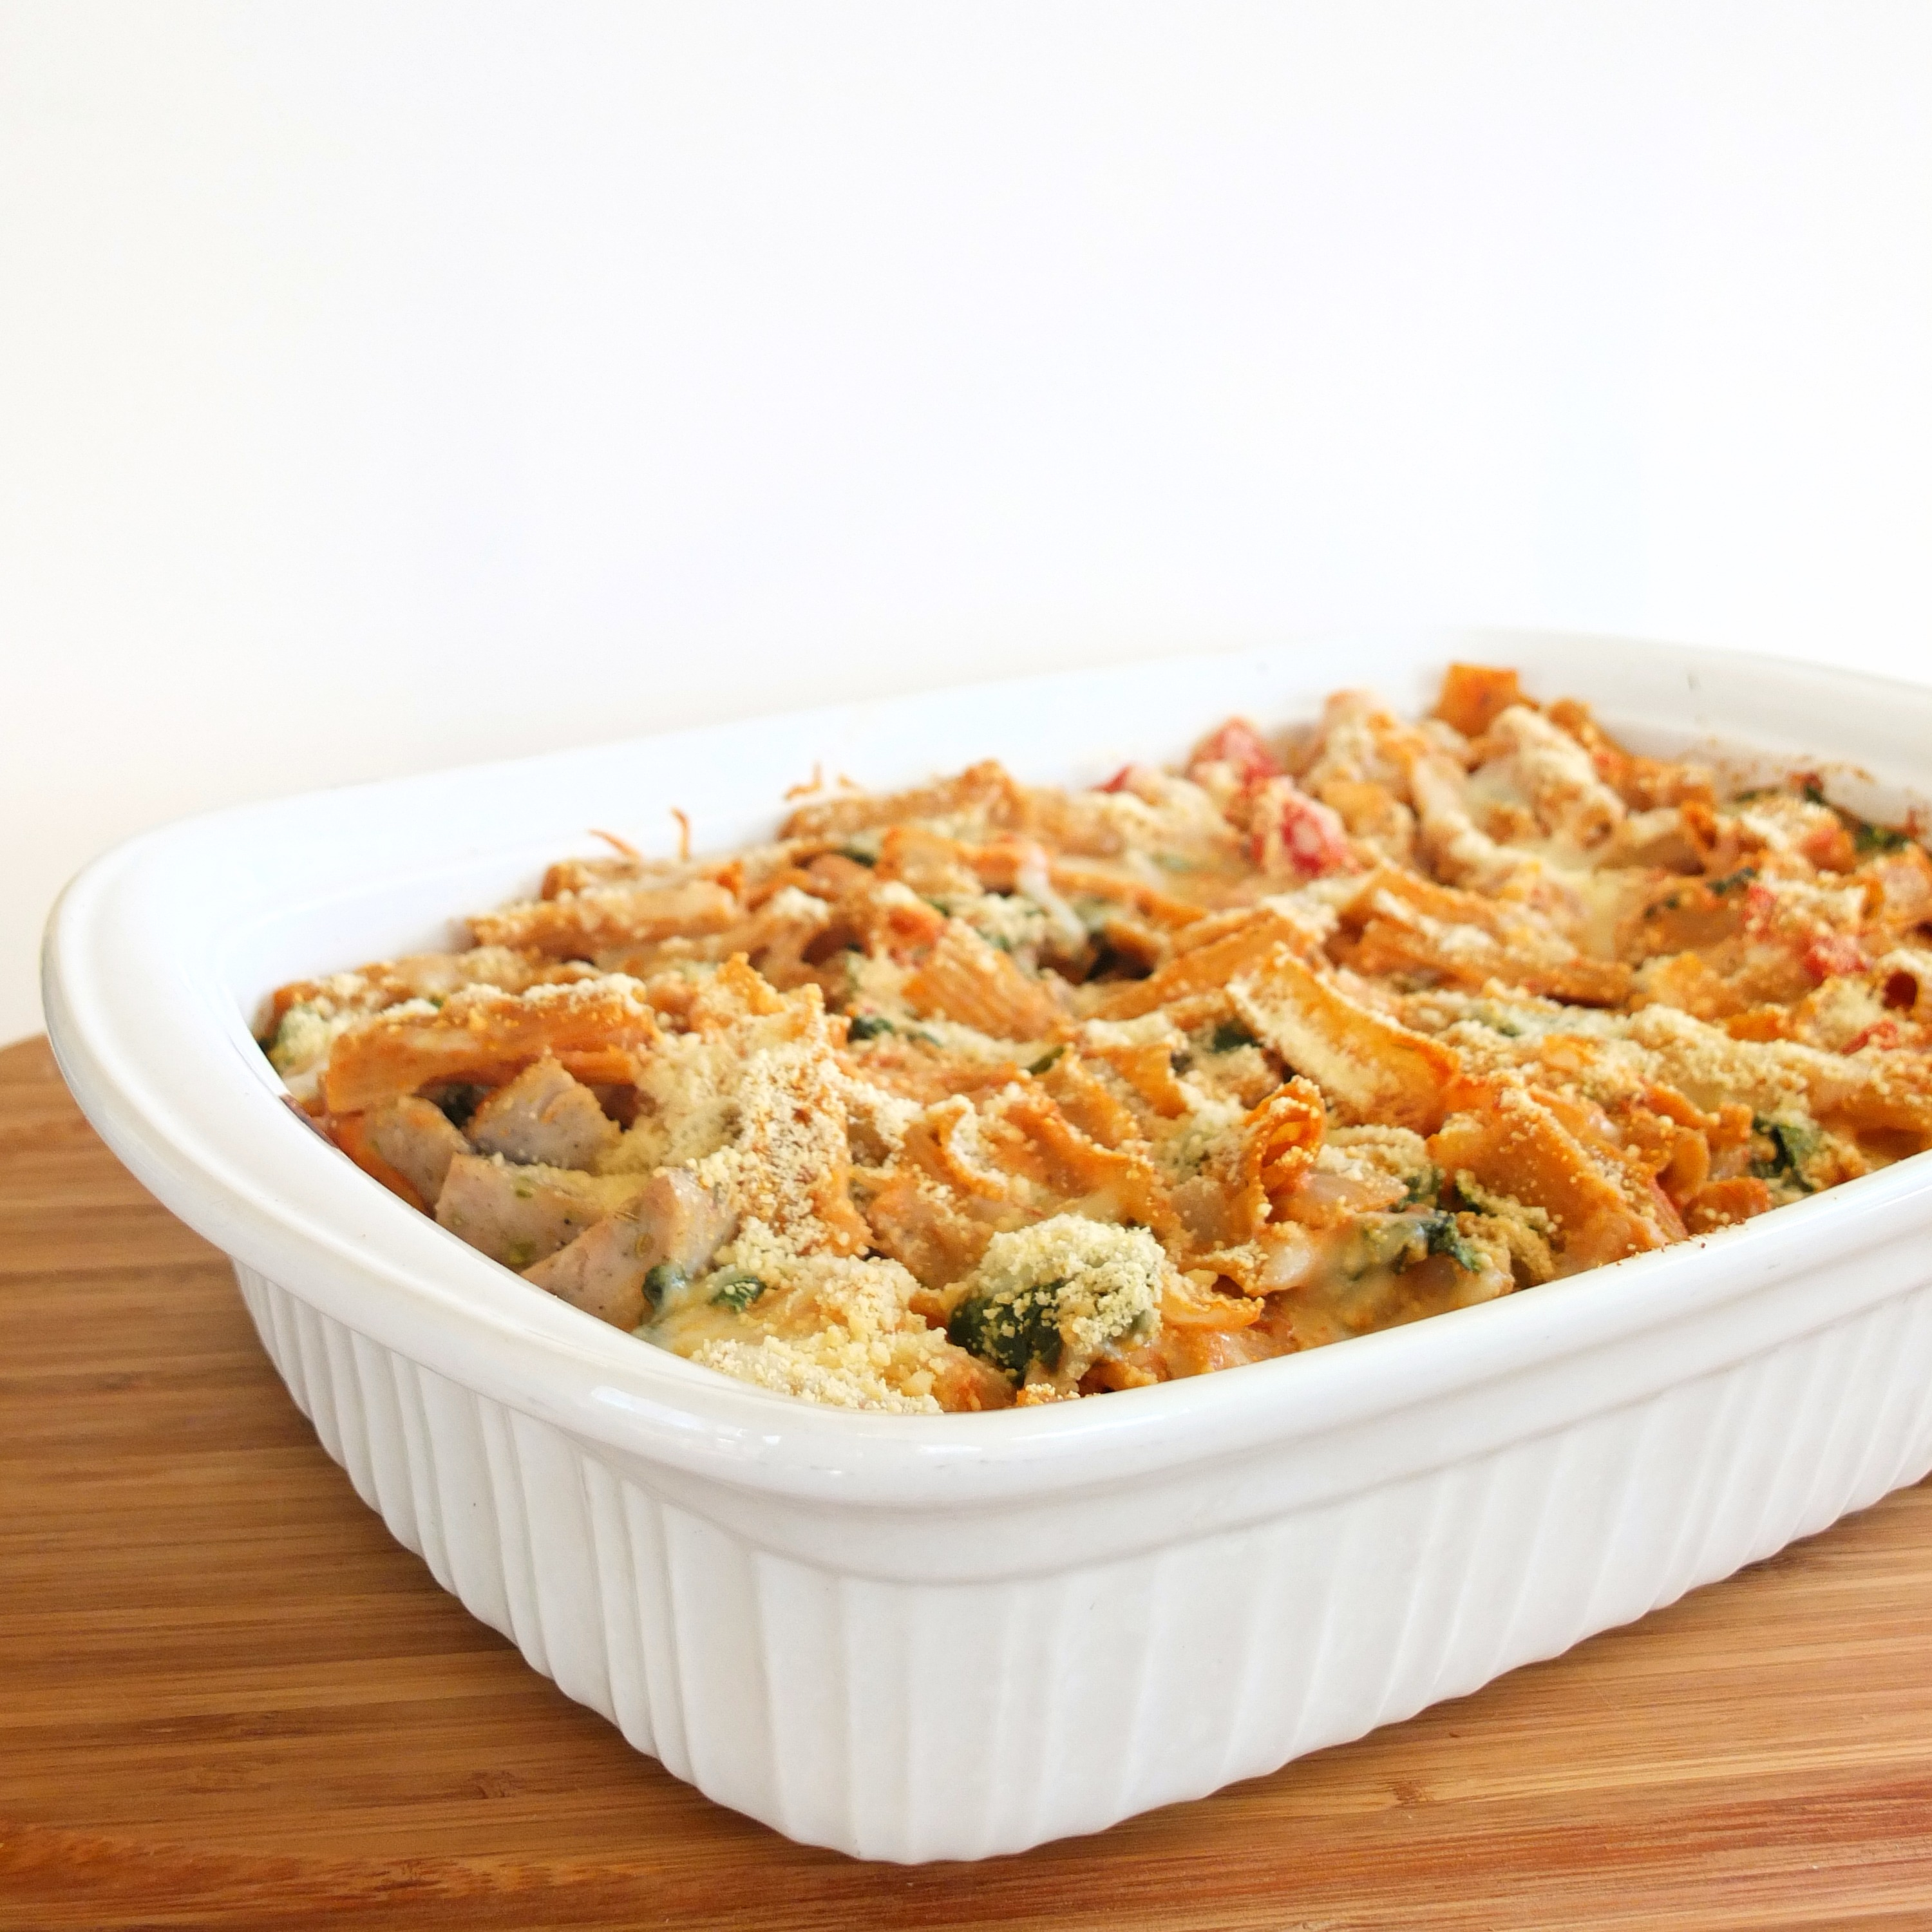 Baked Pasta with Chicken Sausage - Pick Any Two